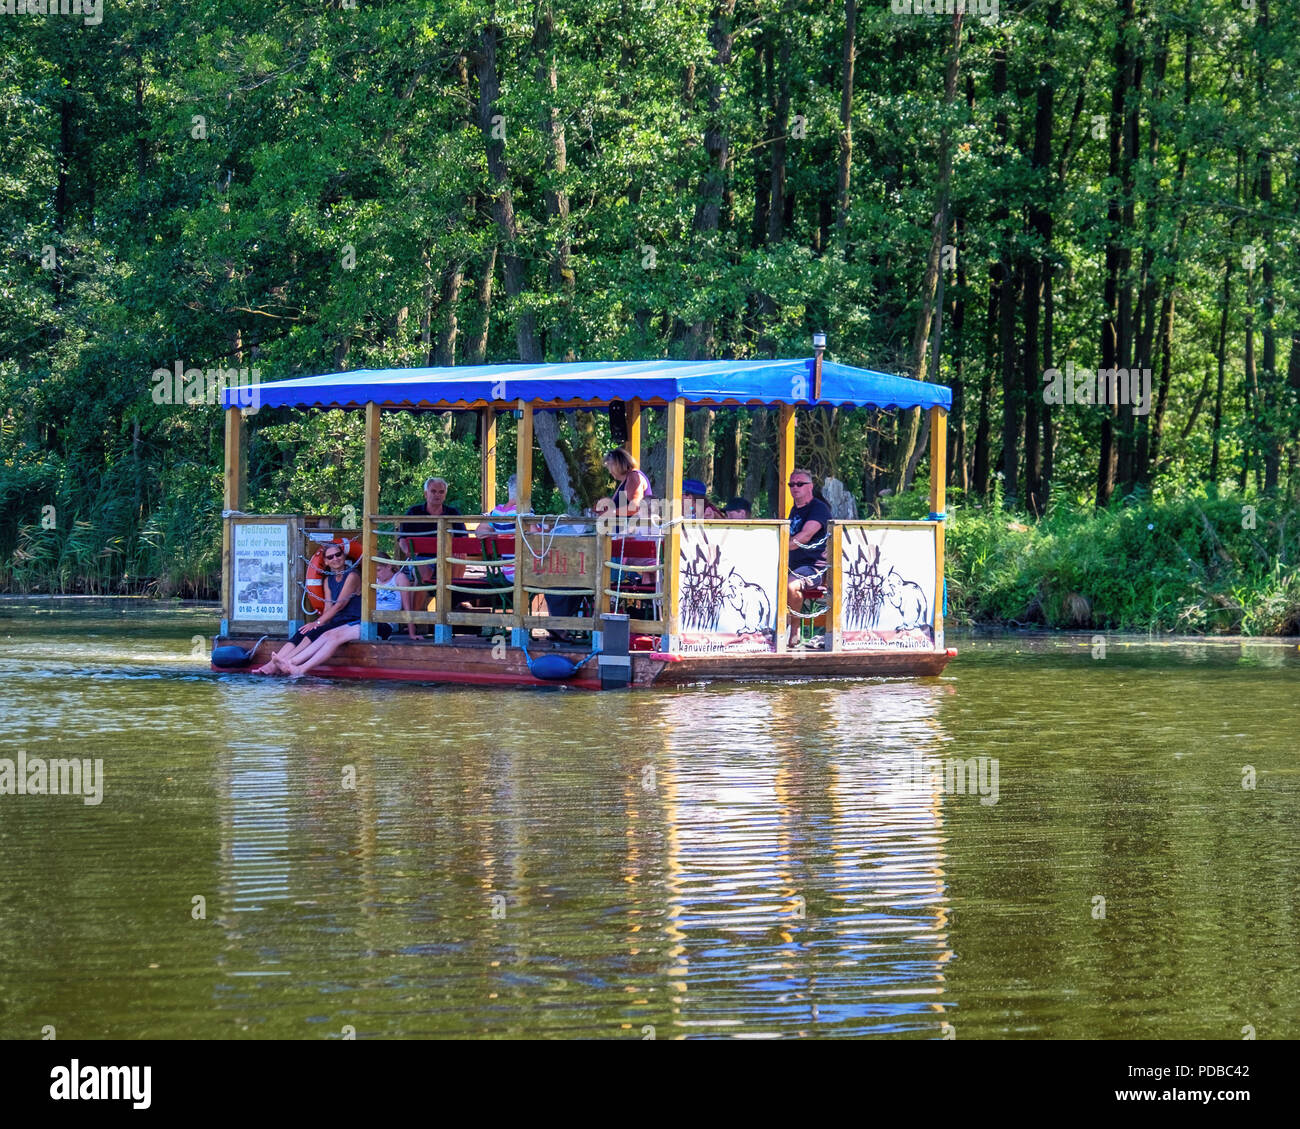 Germany, River Peene - Tourists cruise on pleaure boat on unspoilt river in Peenetal nature conservation park - Stock Image